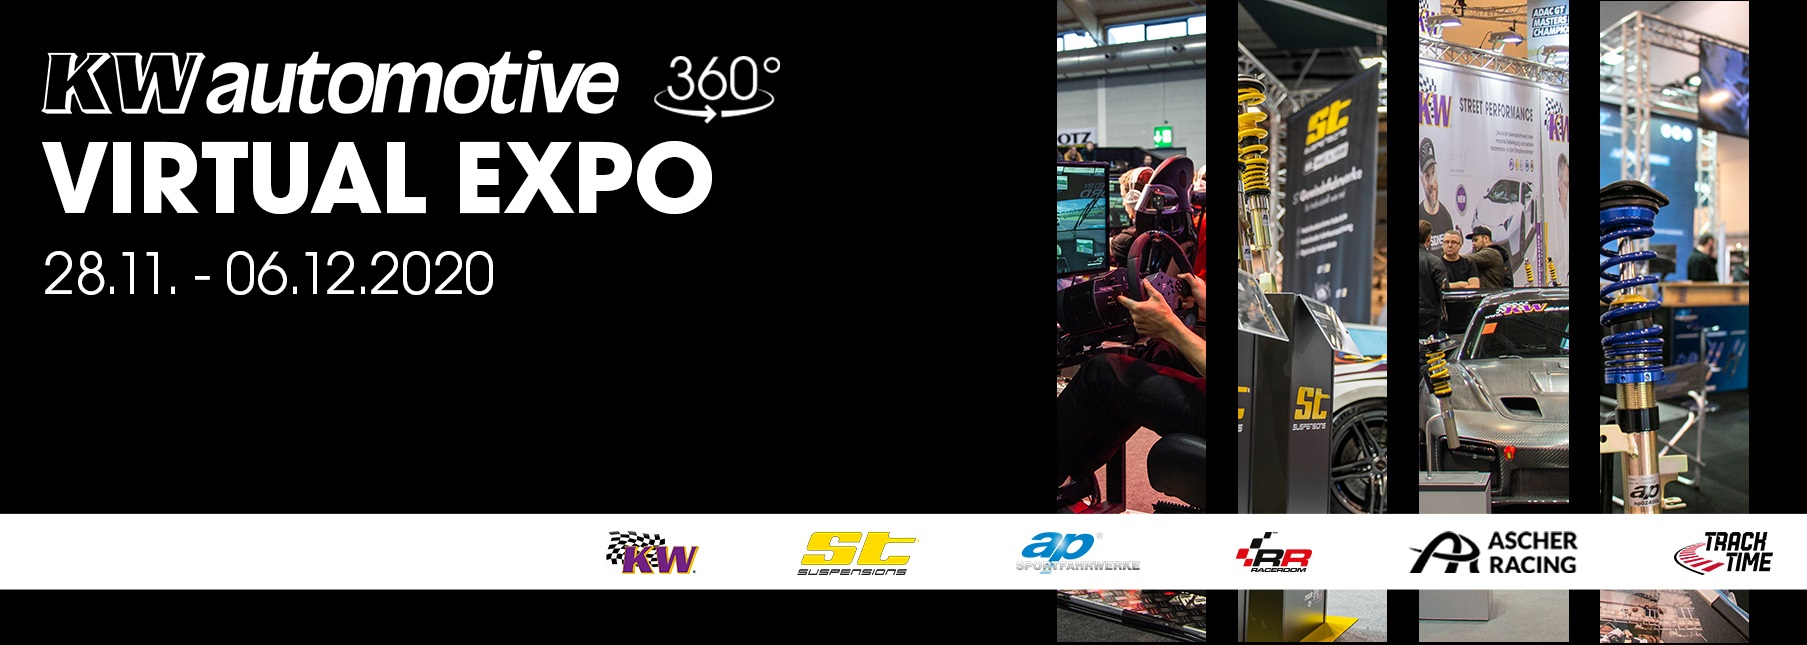 KW automotive Expo Banner